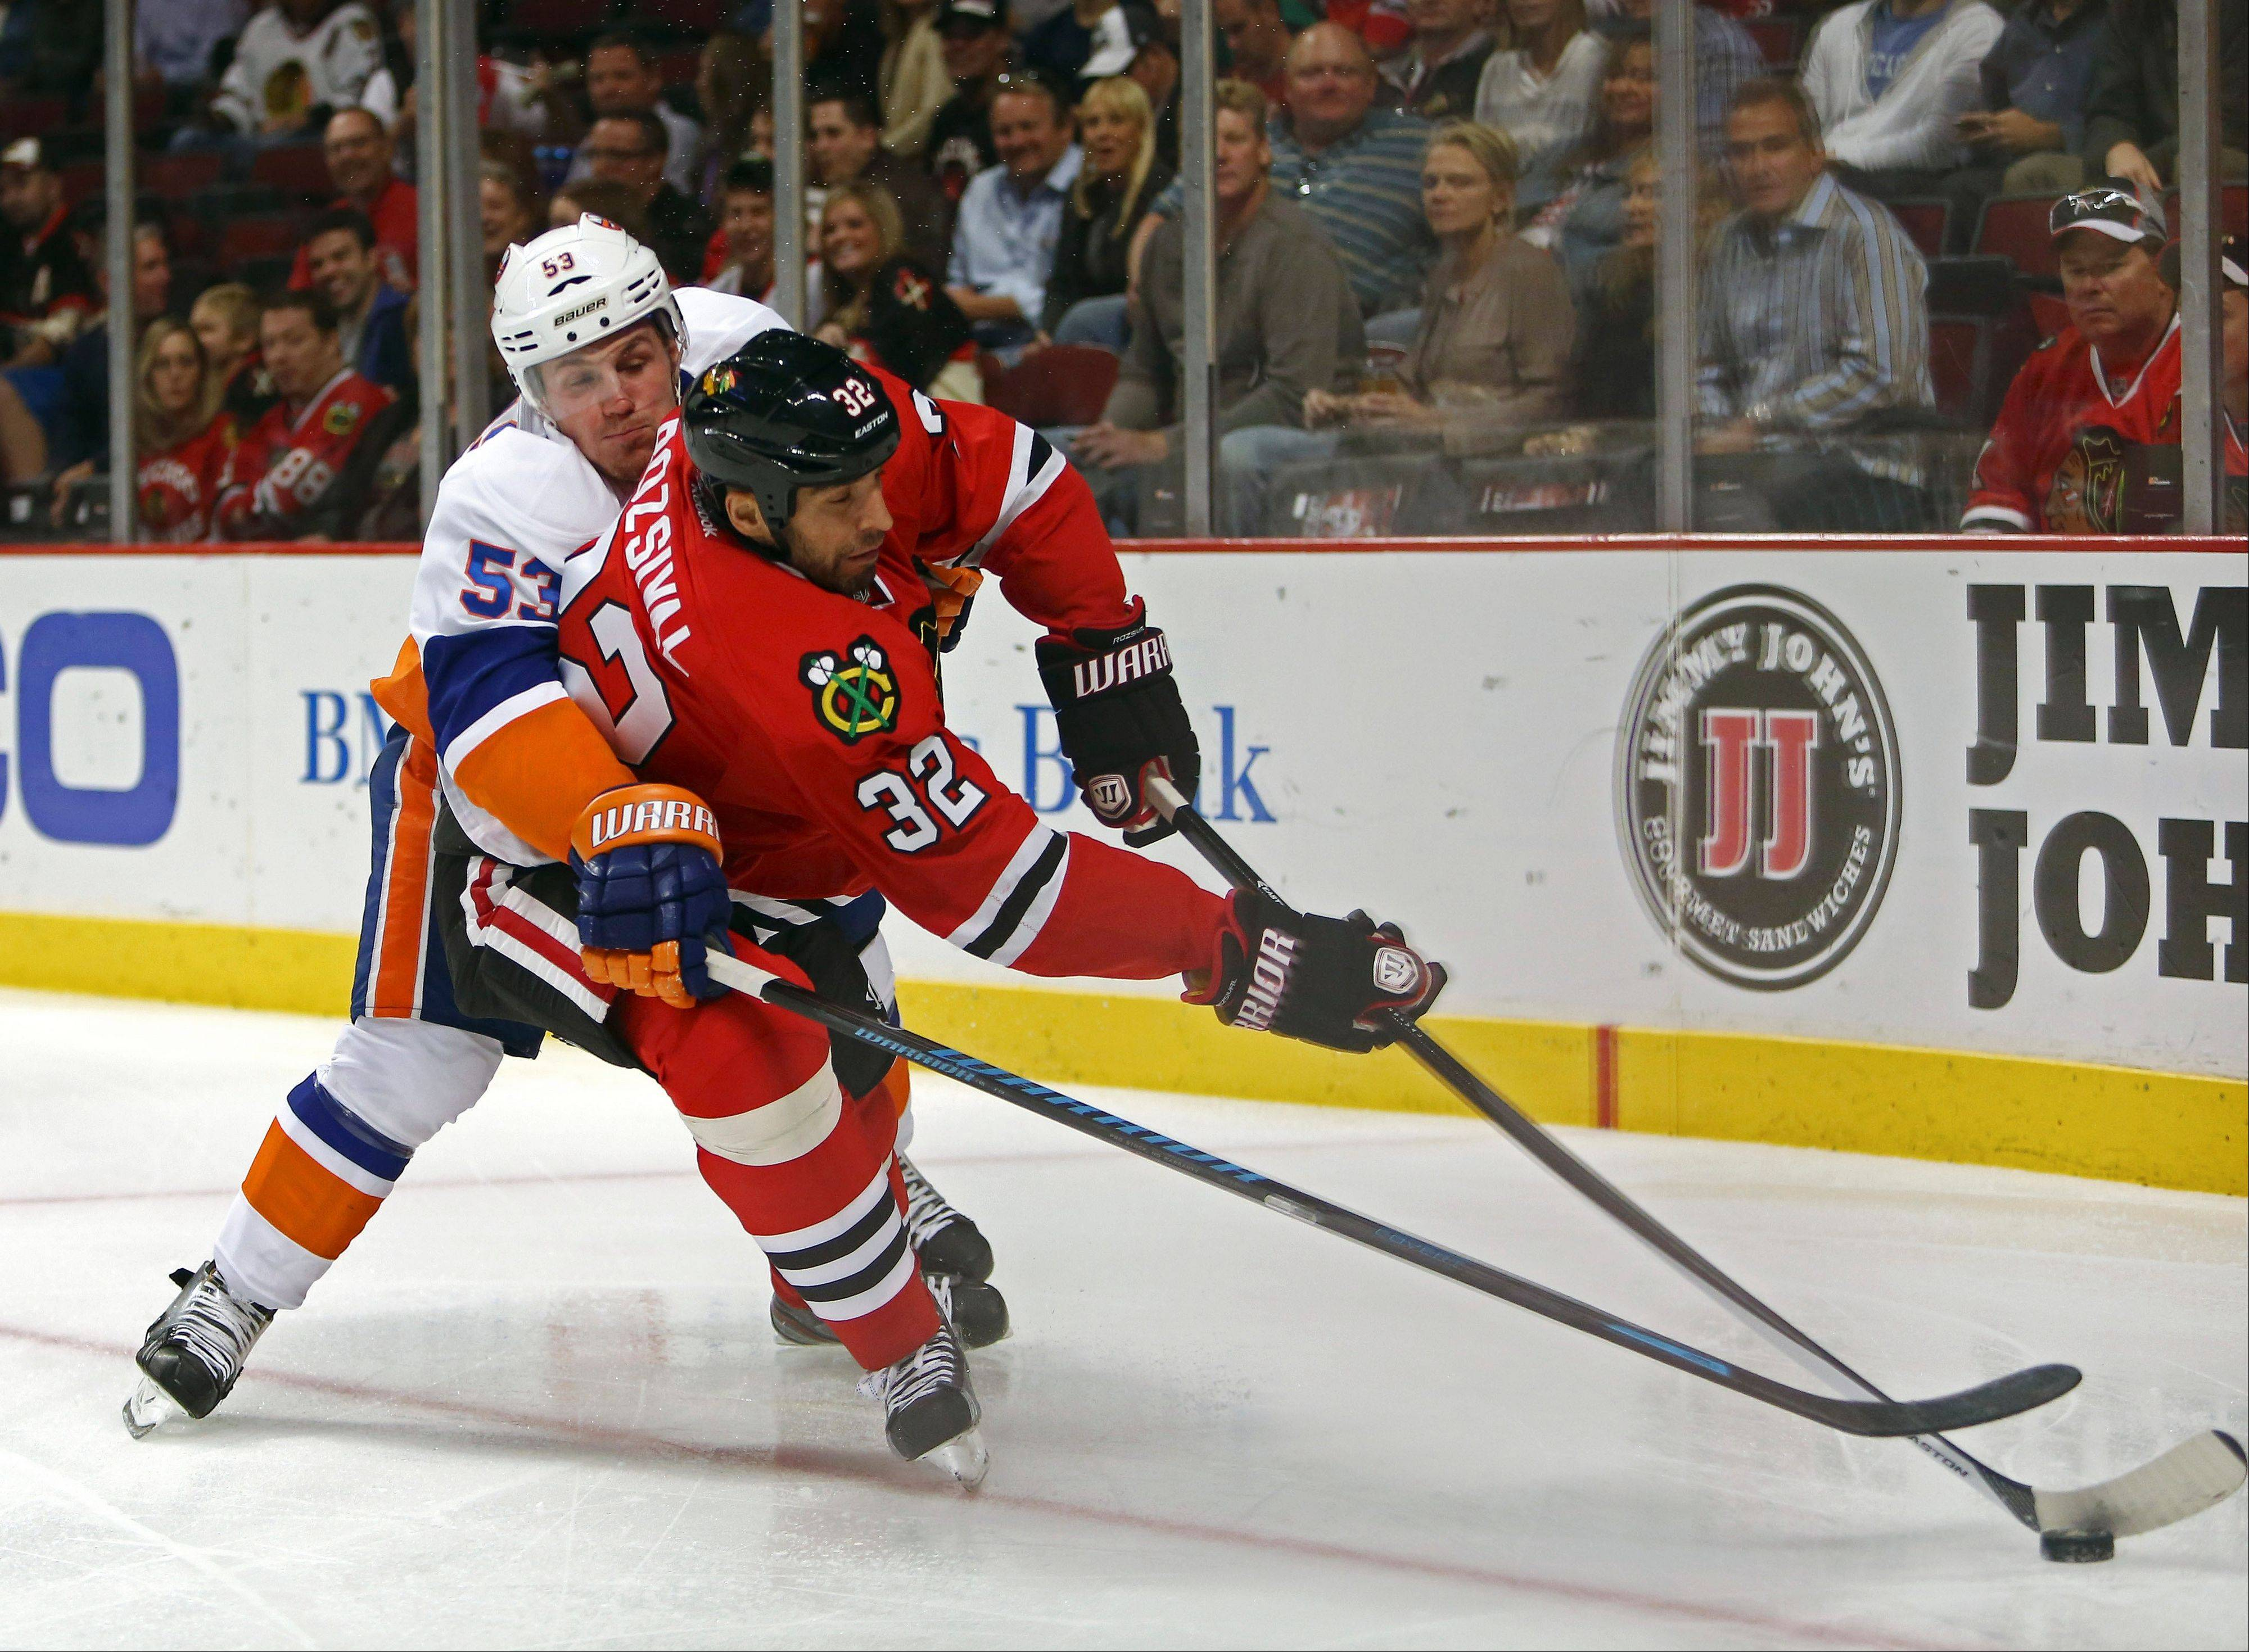 New York Islanders' Casey Cizikas tries to poke the puck away from Chicago Blackhawks' Michal Rosival during the first period of an NHL hockey game in Chicago on Friday, Oct. 11, 2013.